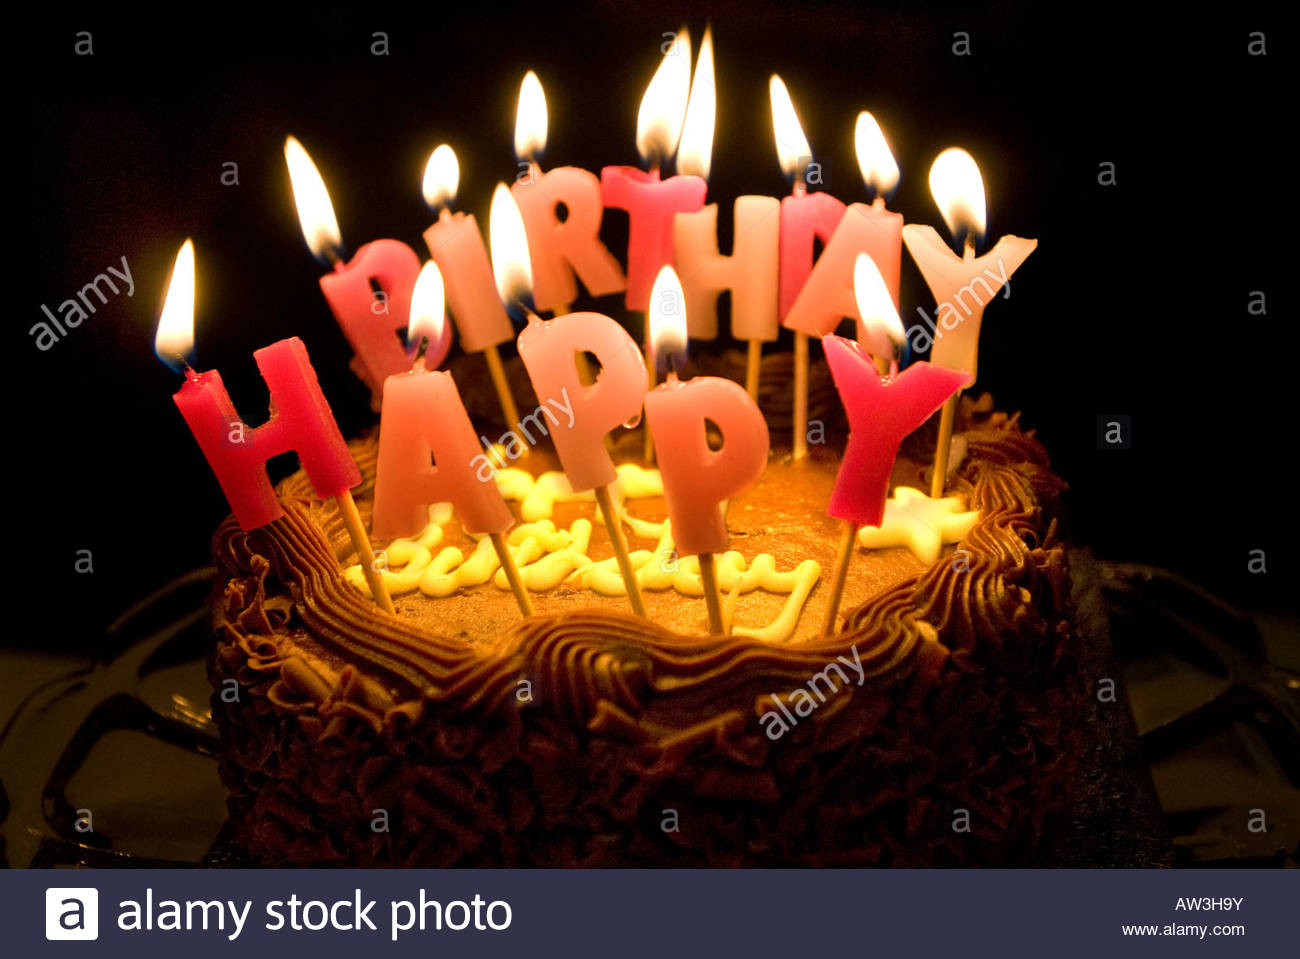 a picture saying happy birthday ; lighted-candles-saying-happy-birthday-on-a-chocolate-cake-AW3H9Y